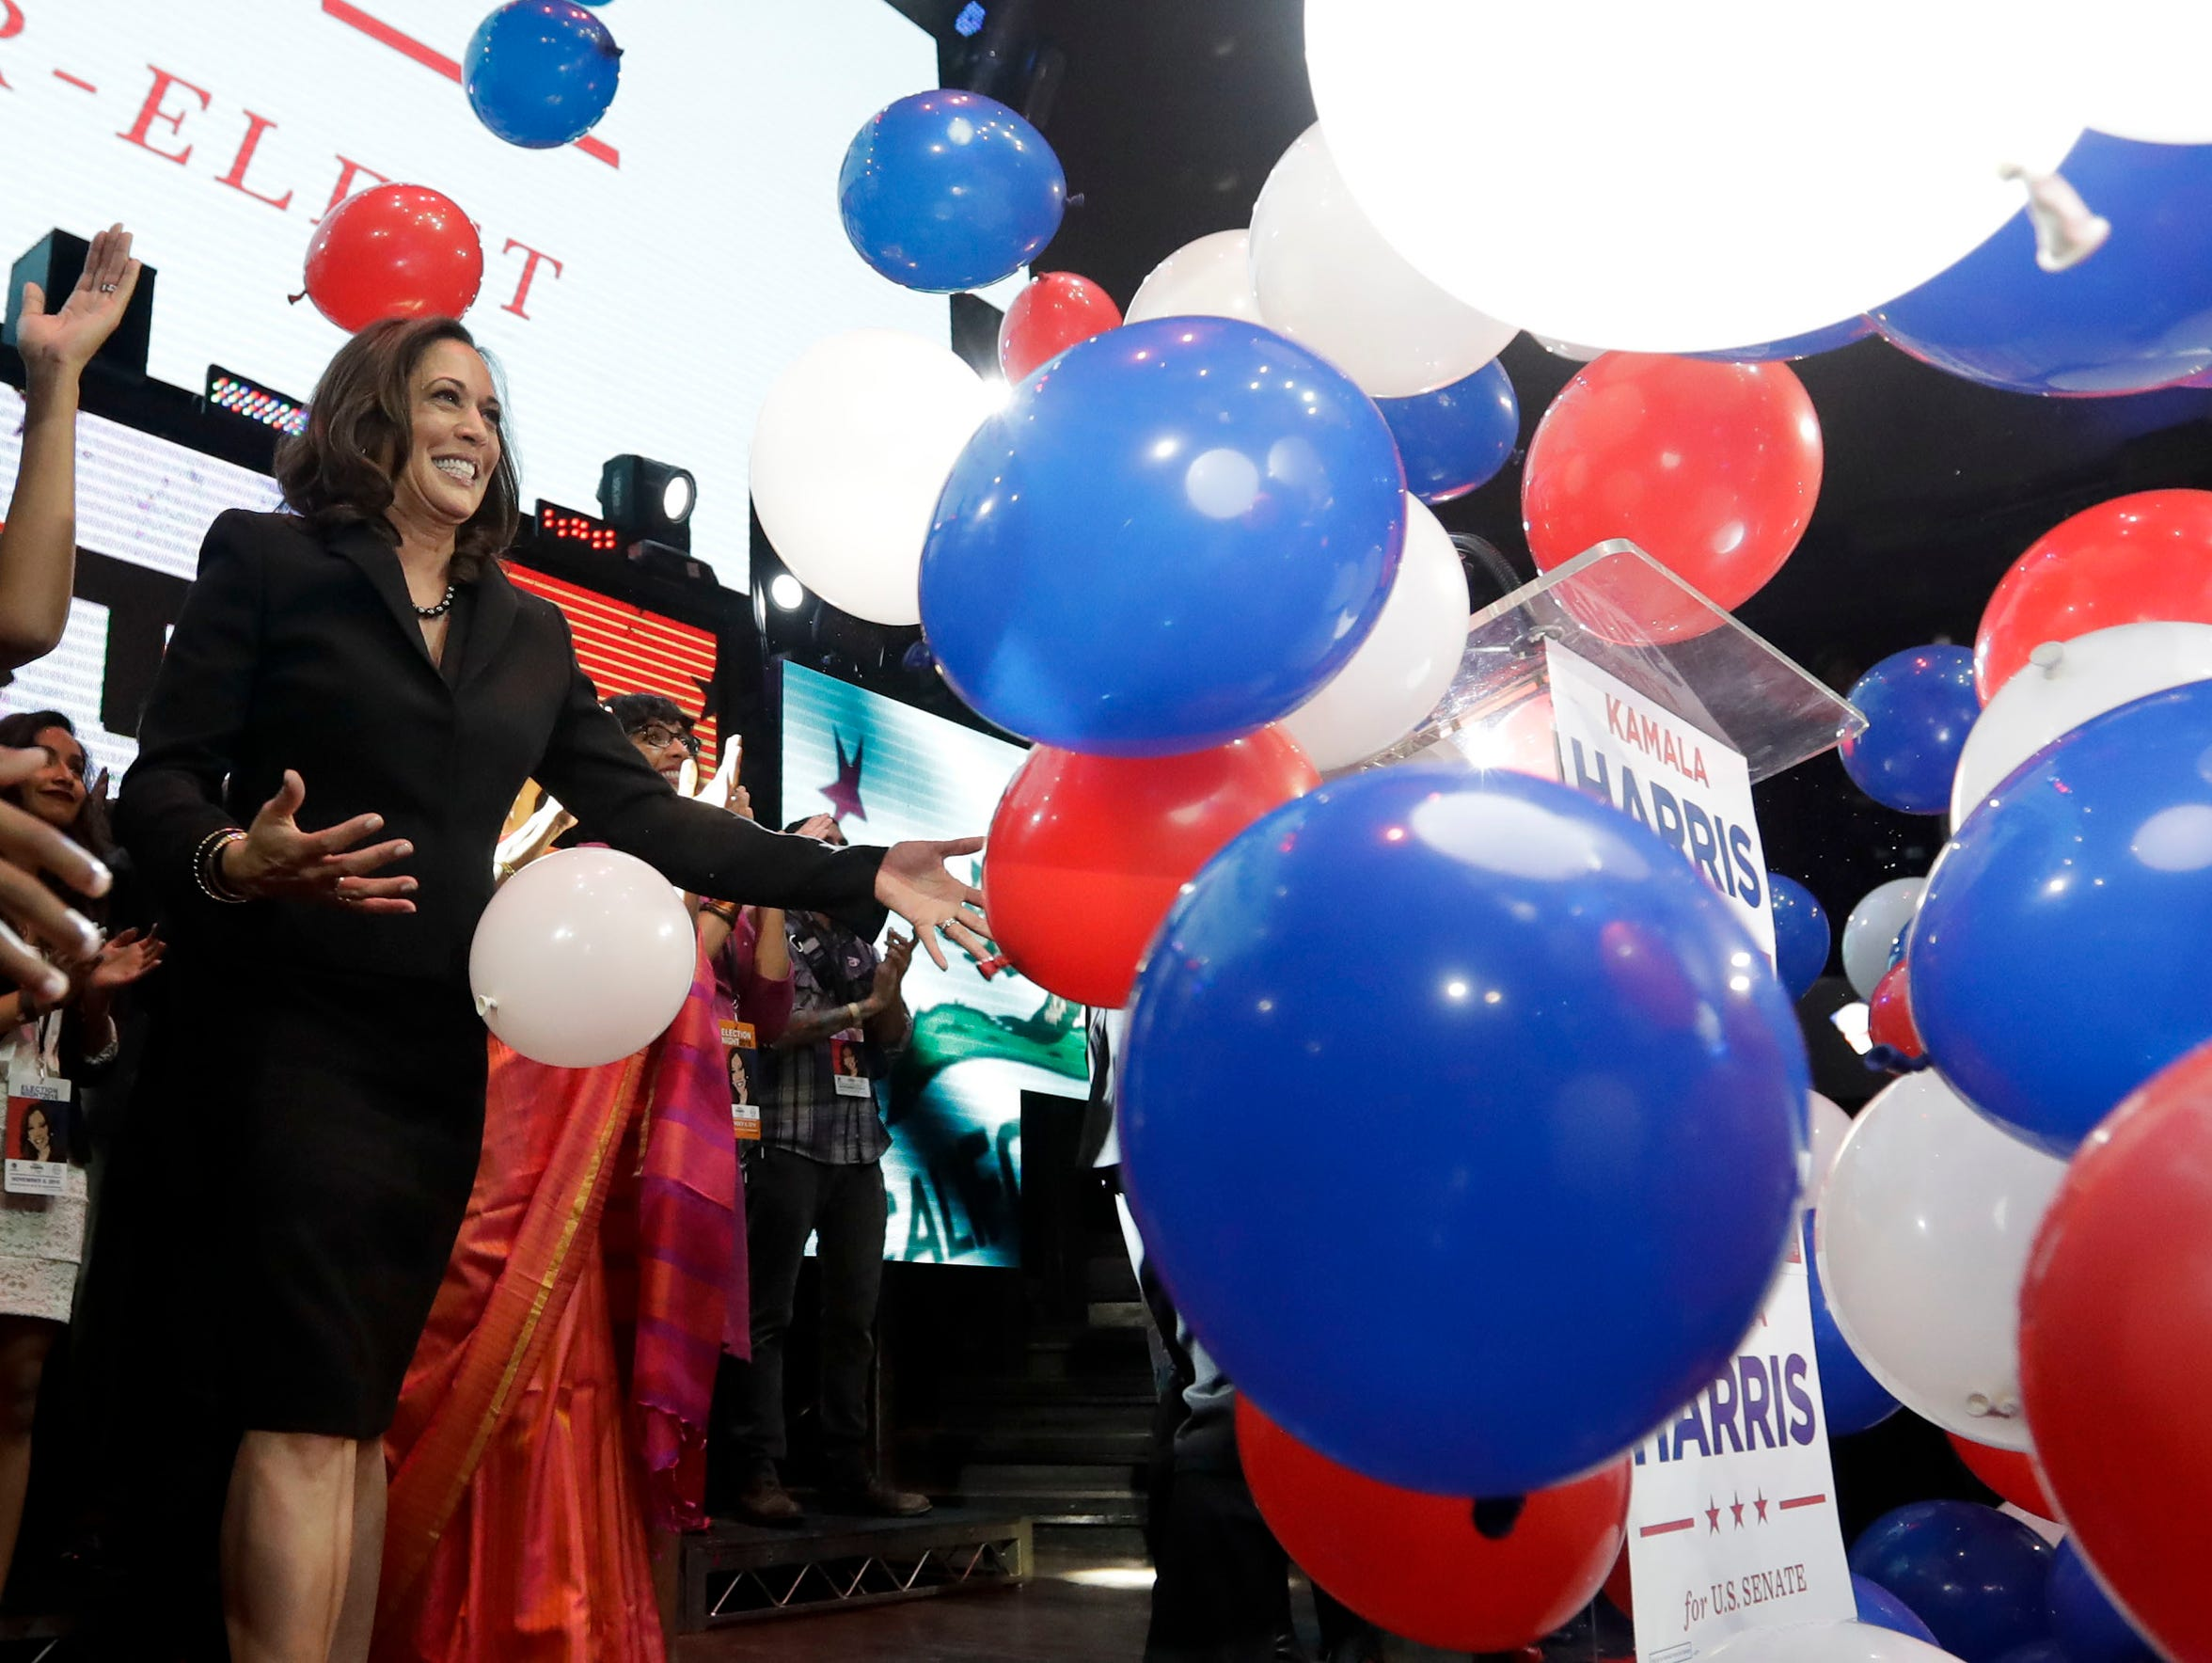 Kamala Harris greets supporters at a election night